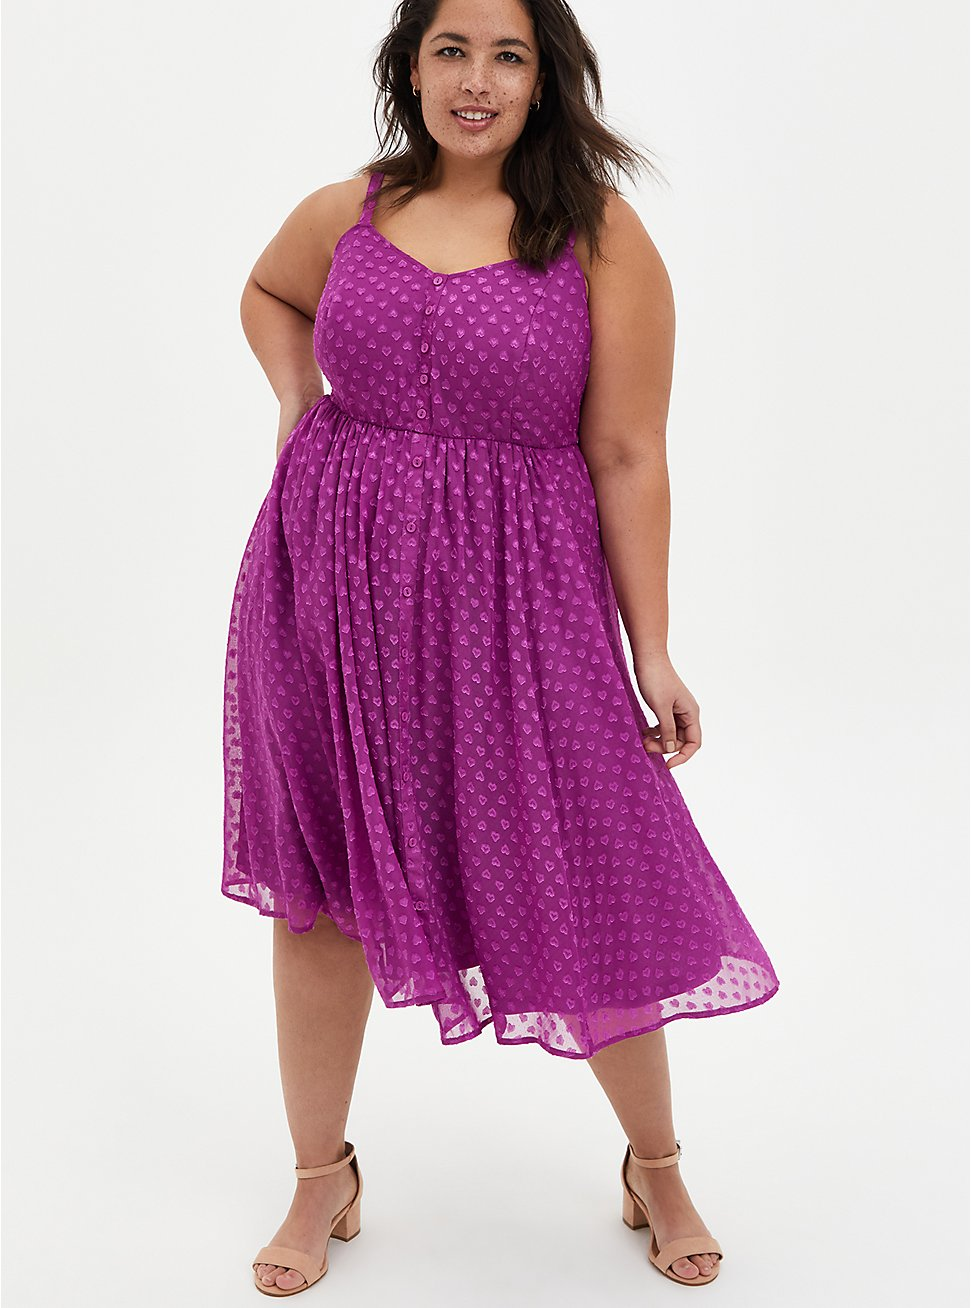 Grape Purple Clip Dot Chiffon Skater Midi Dress, WILLOWHERB, hi-res